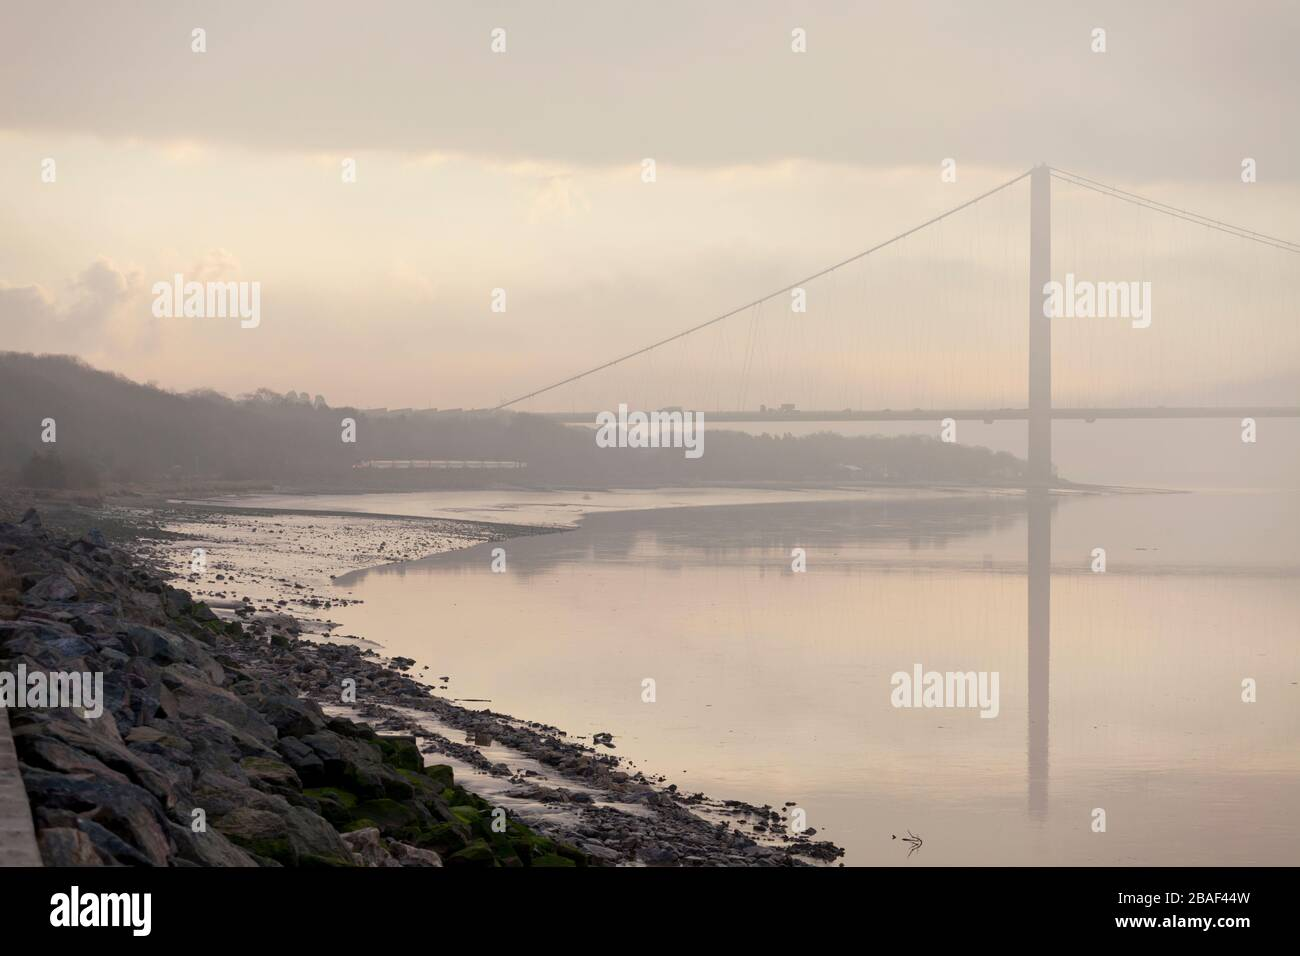 LNER High speed train passing the Humber bridge and river Humber at North Ferriby on a misty morning with a hull - Kings cross train Stock Photo